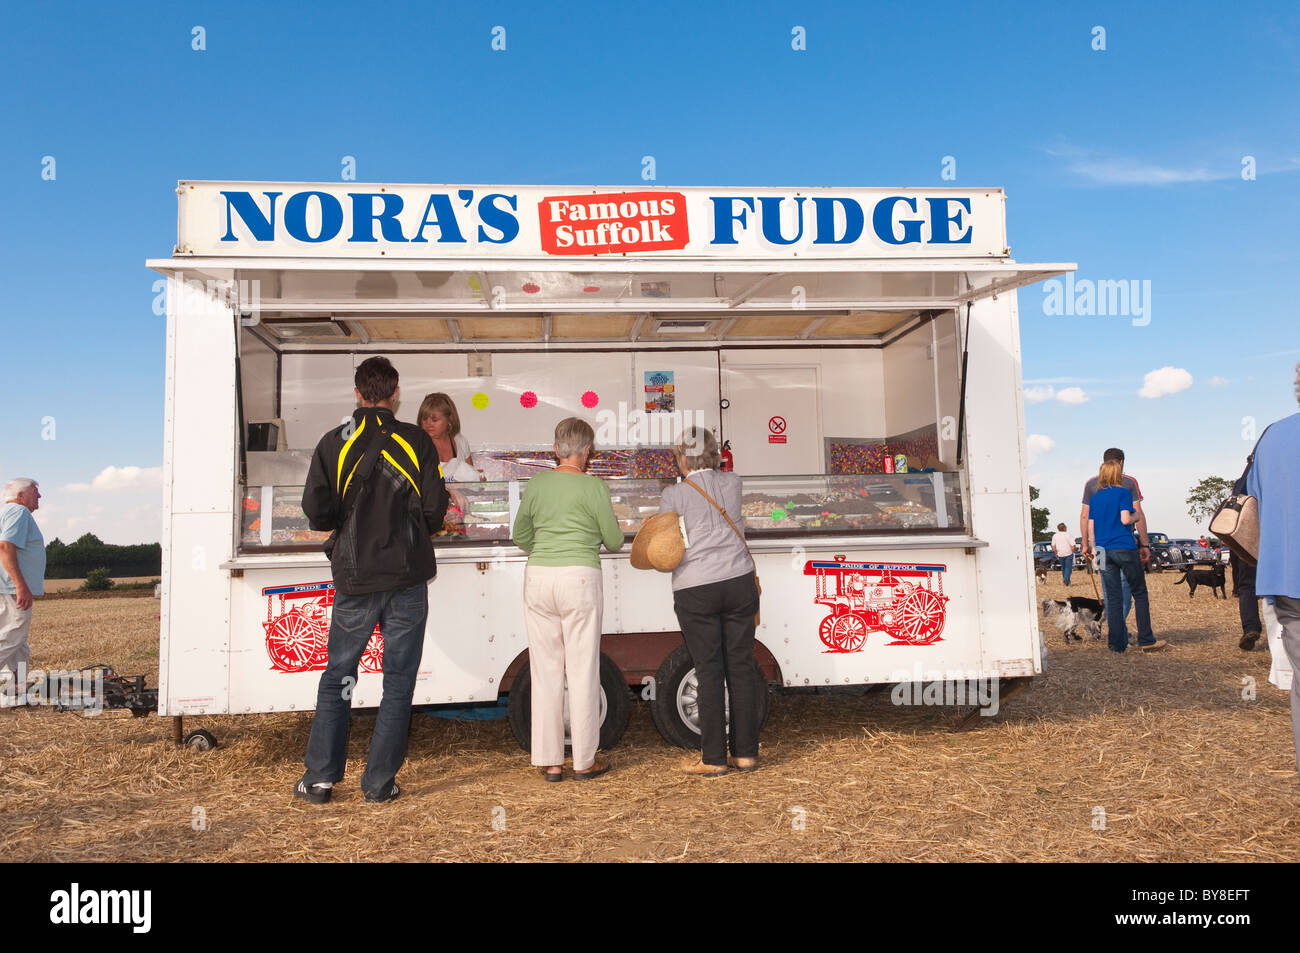 Nora's famous suffolk fudge on sale at a country fete in the Uk - Stock Image